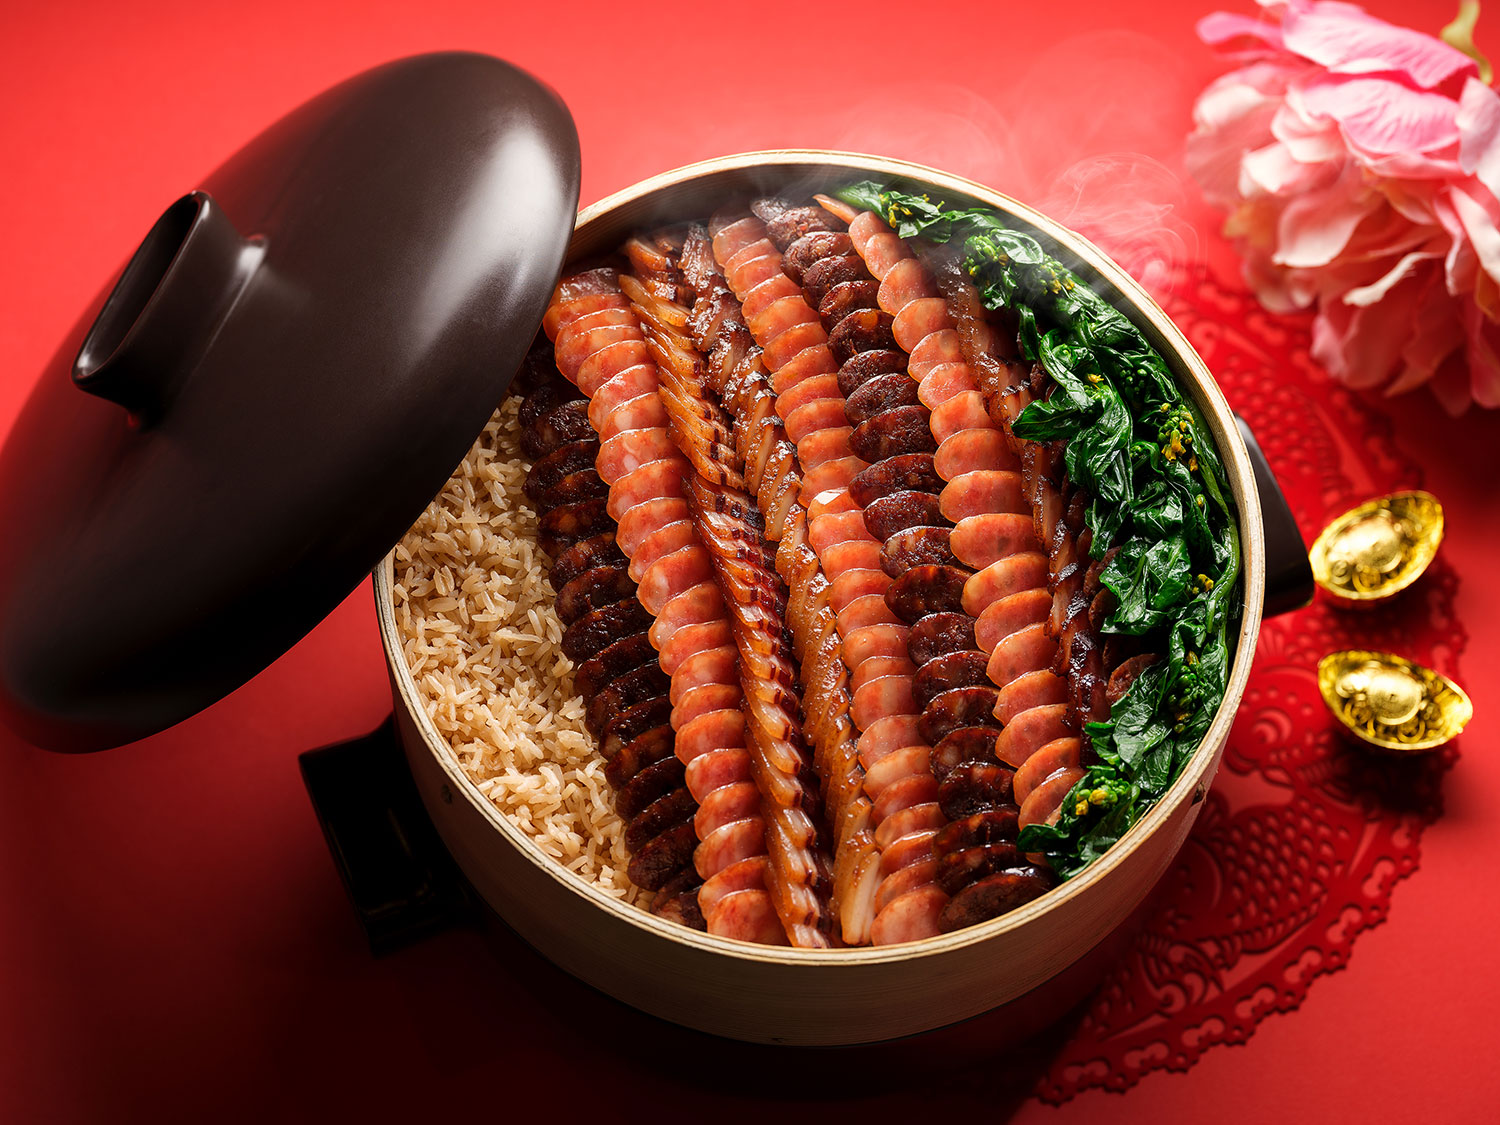 Fragrant-Rice-With-Selection-Of-Premium-Waxed-Meats-And-Chinese-Sausage